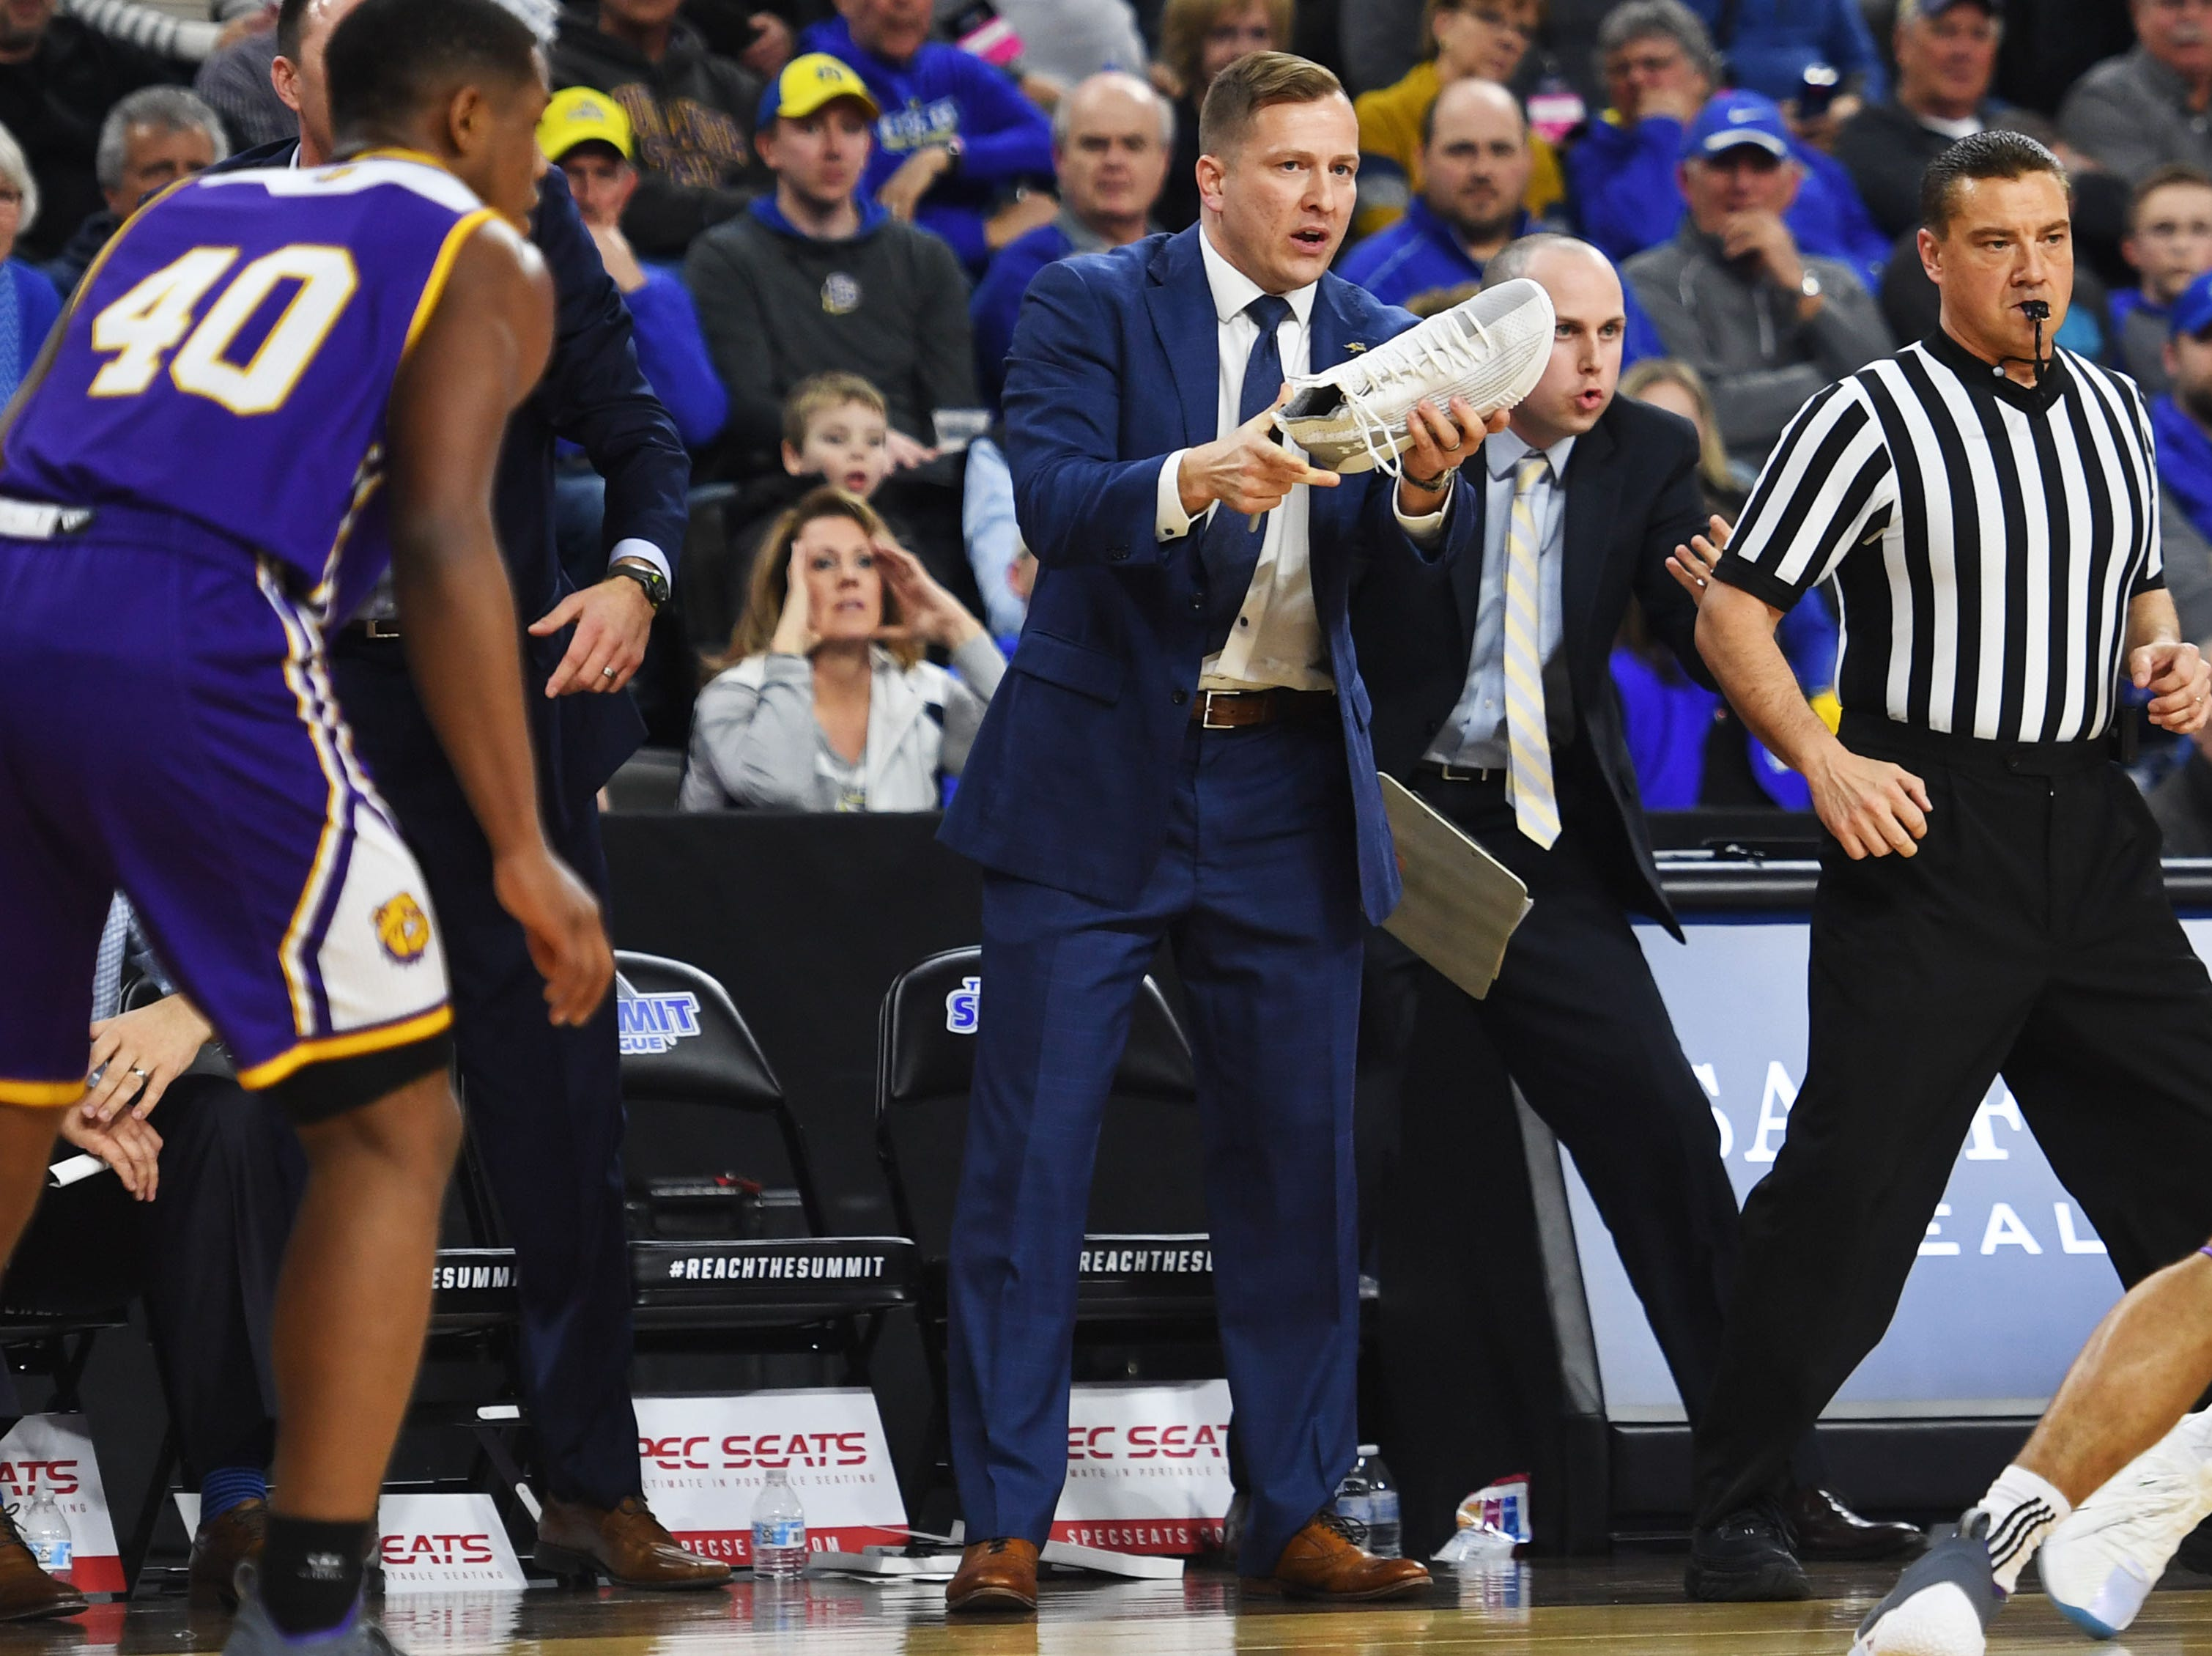 SDSU's head coach T.J. Otzelberger yells at Mike Daum in the game after he looses his shoe during the game against Western Illinois Saturday, March 9, in the Summit League tournament at the Denny Sanford Premier Center in Sioux Falls.